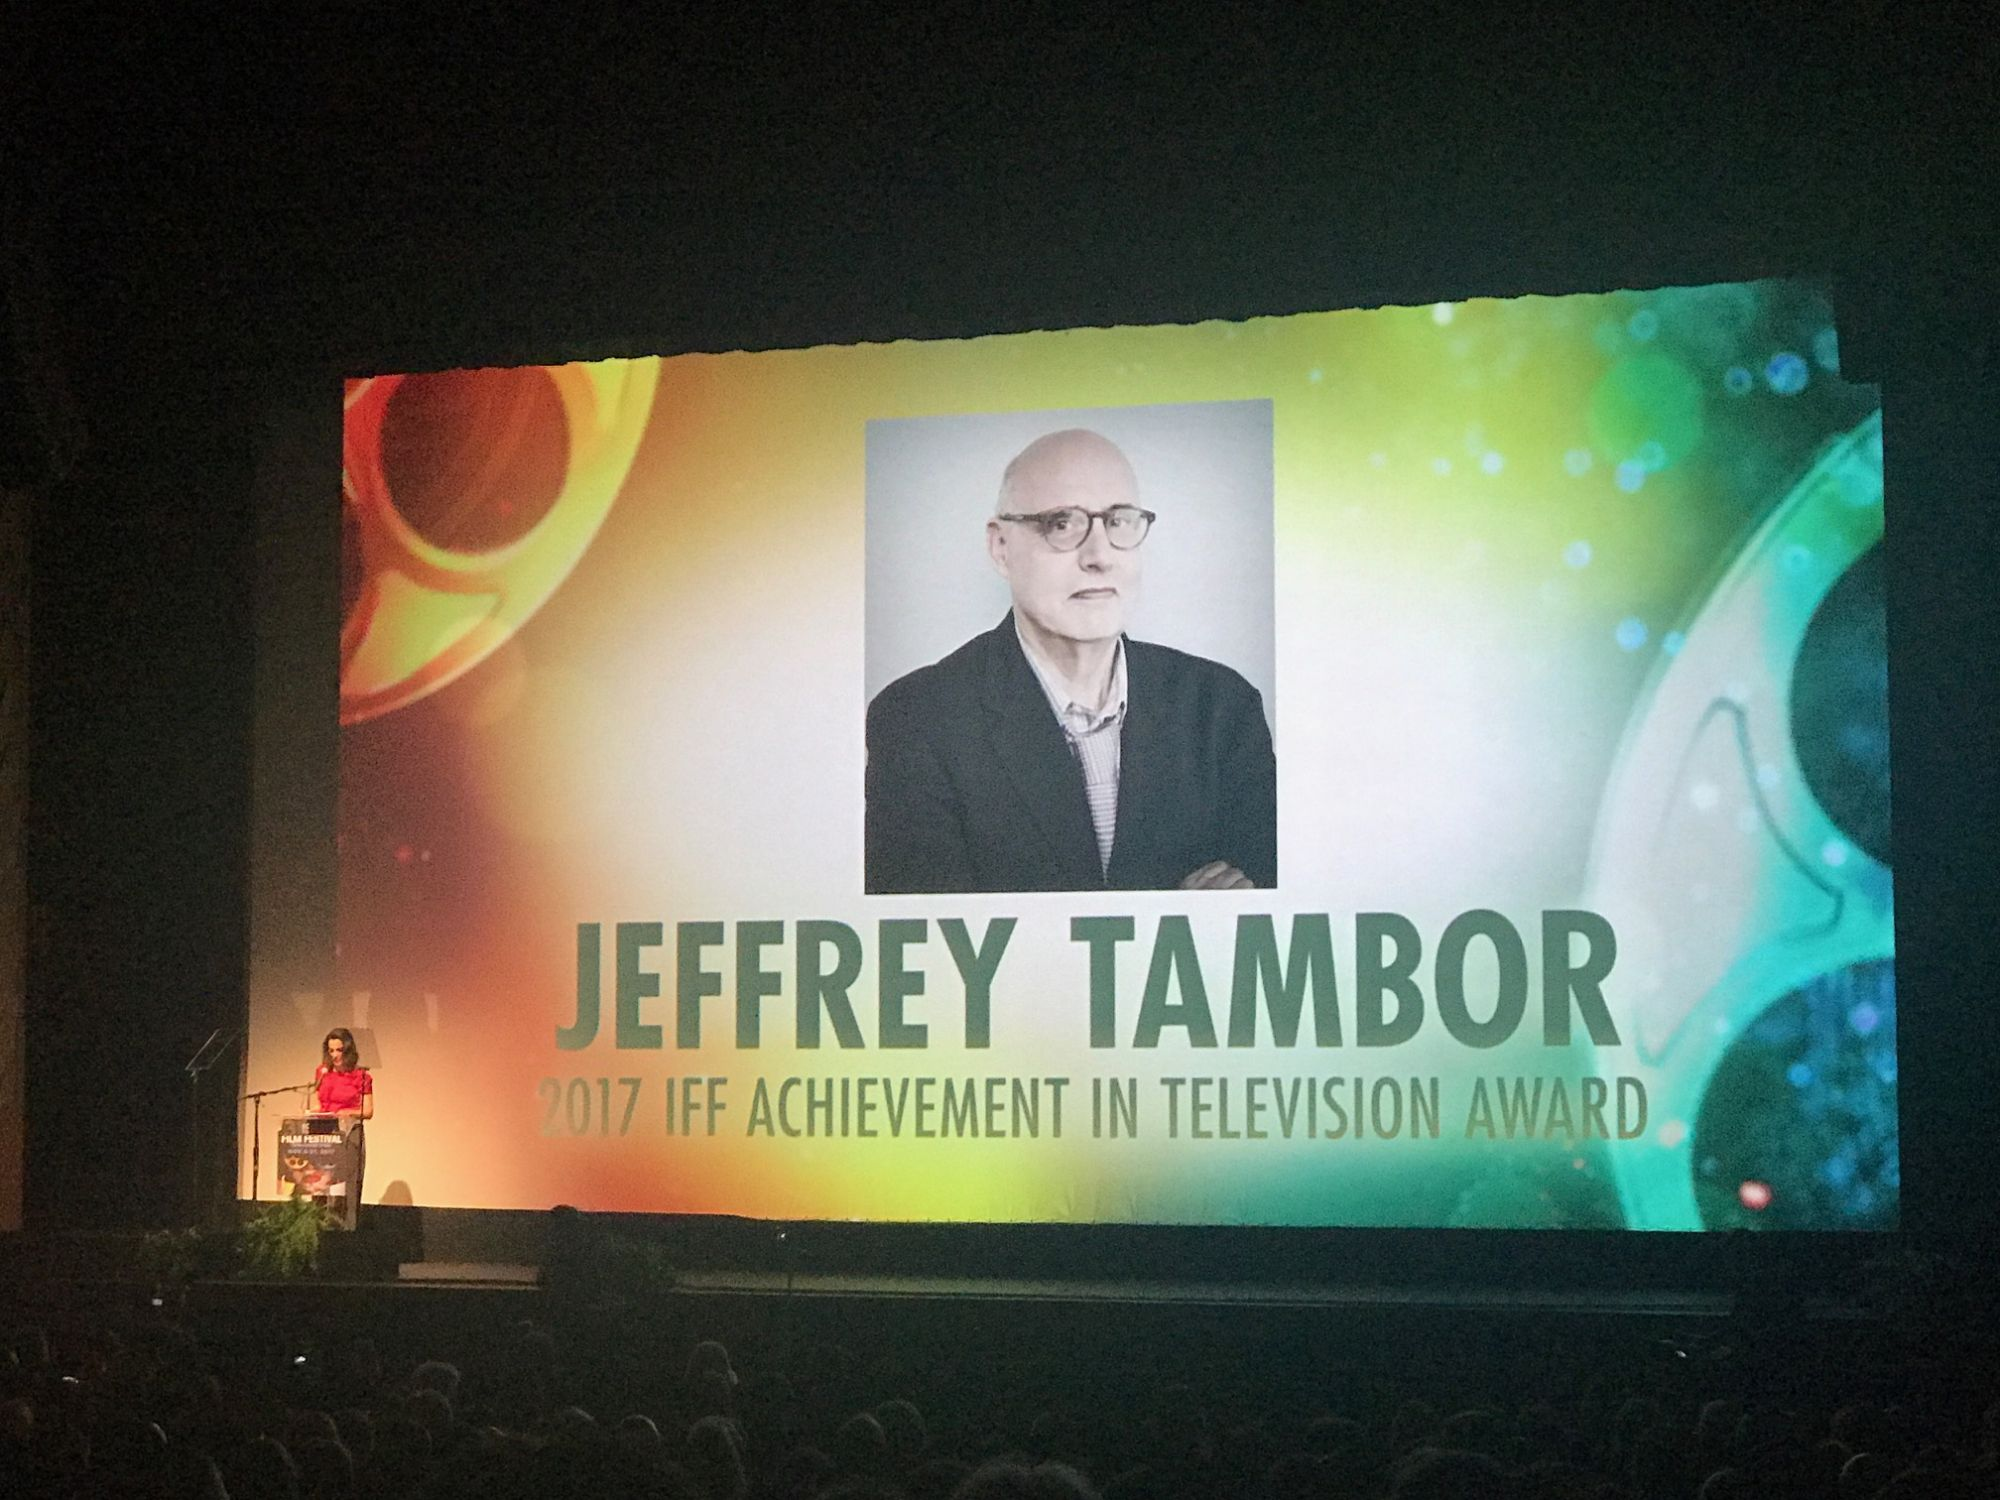 Jeffrey Tambor at the Israeli Film Festival